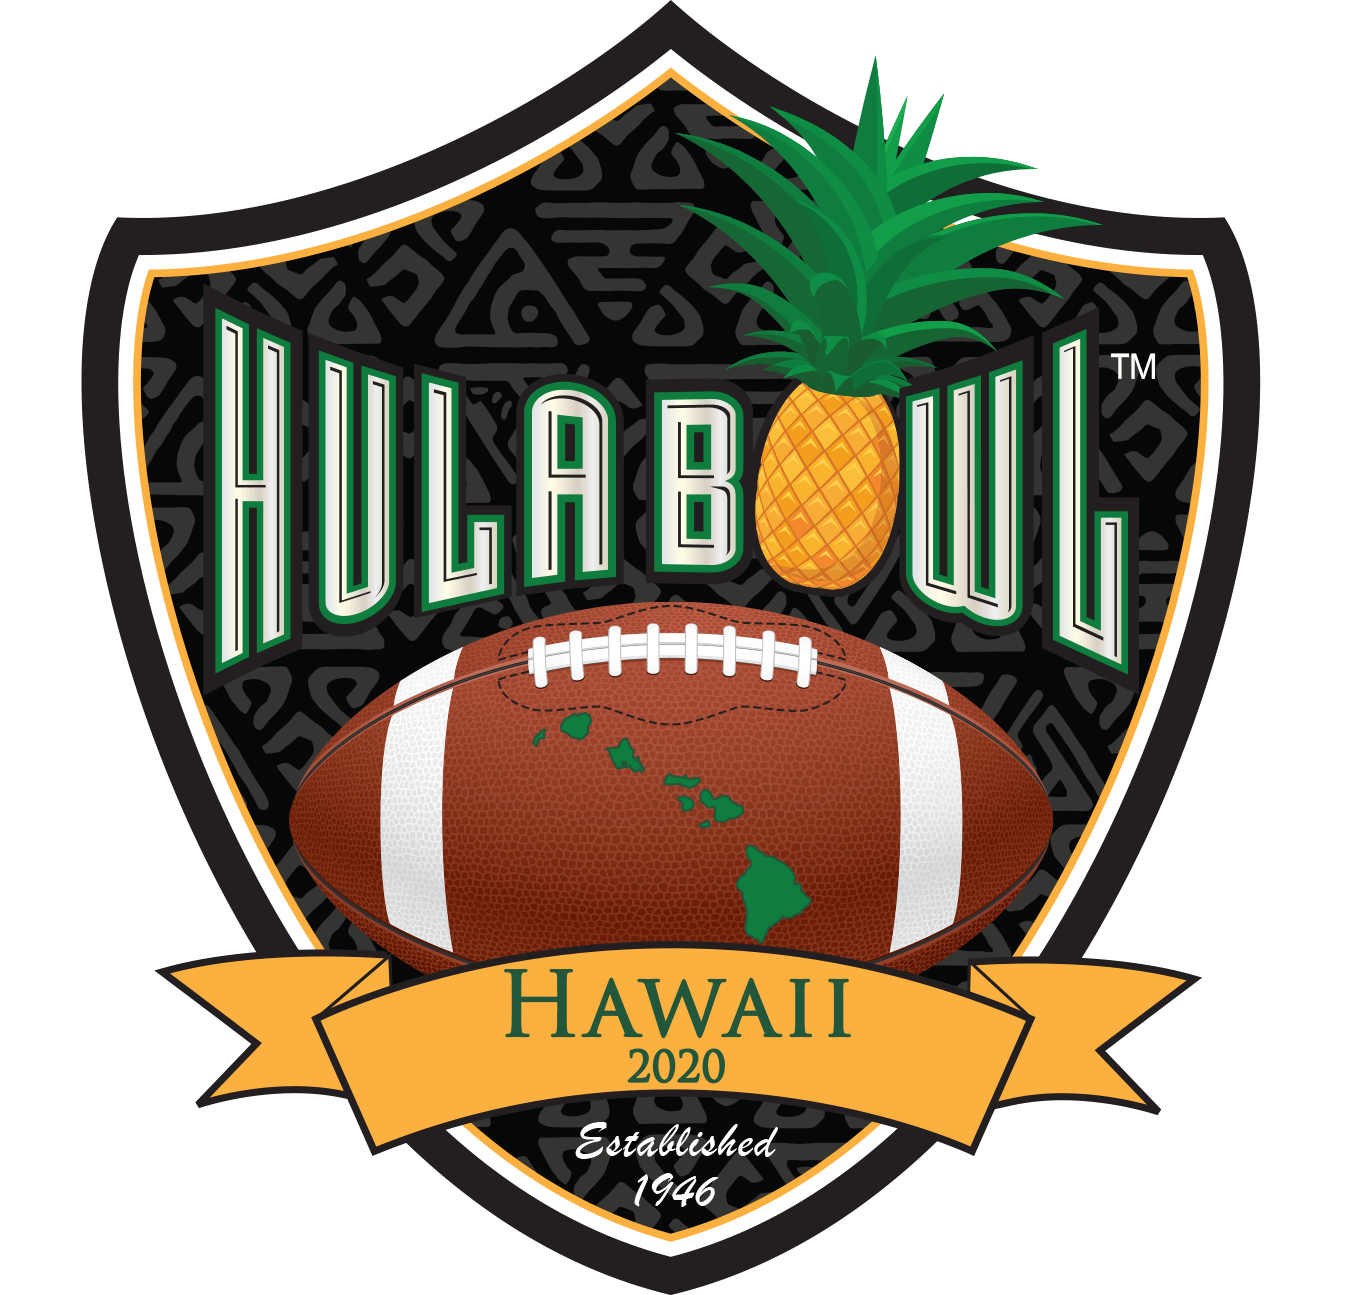 Hula Bowl And Cbs Sports Network Agree To New Television Partnership Newswire